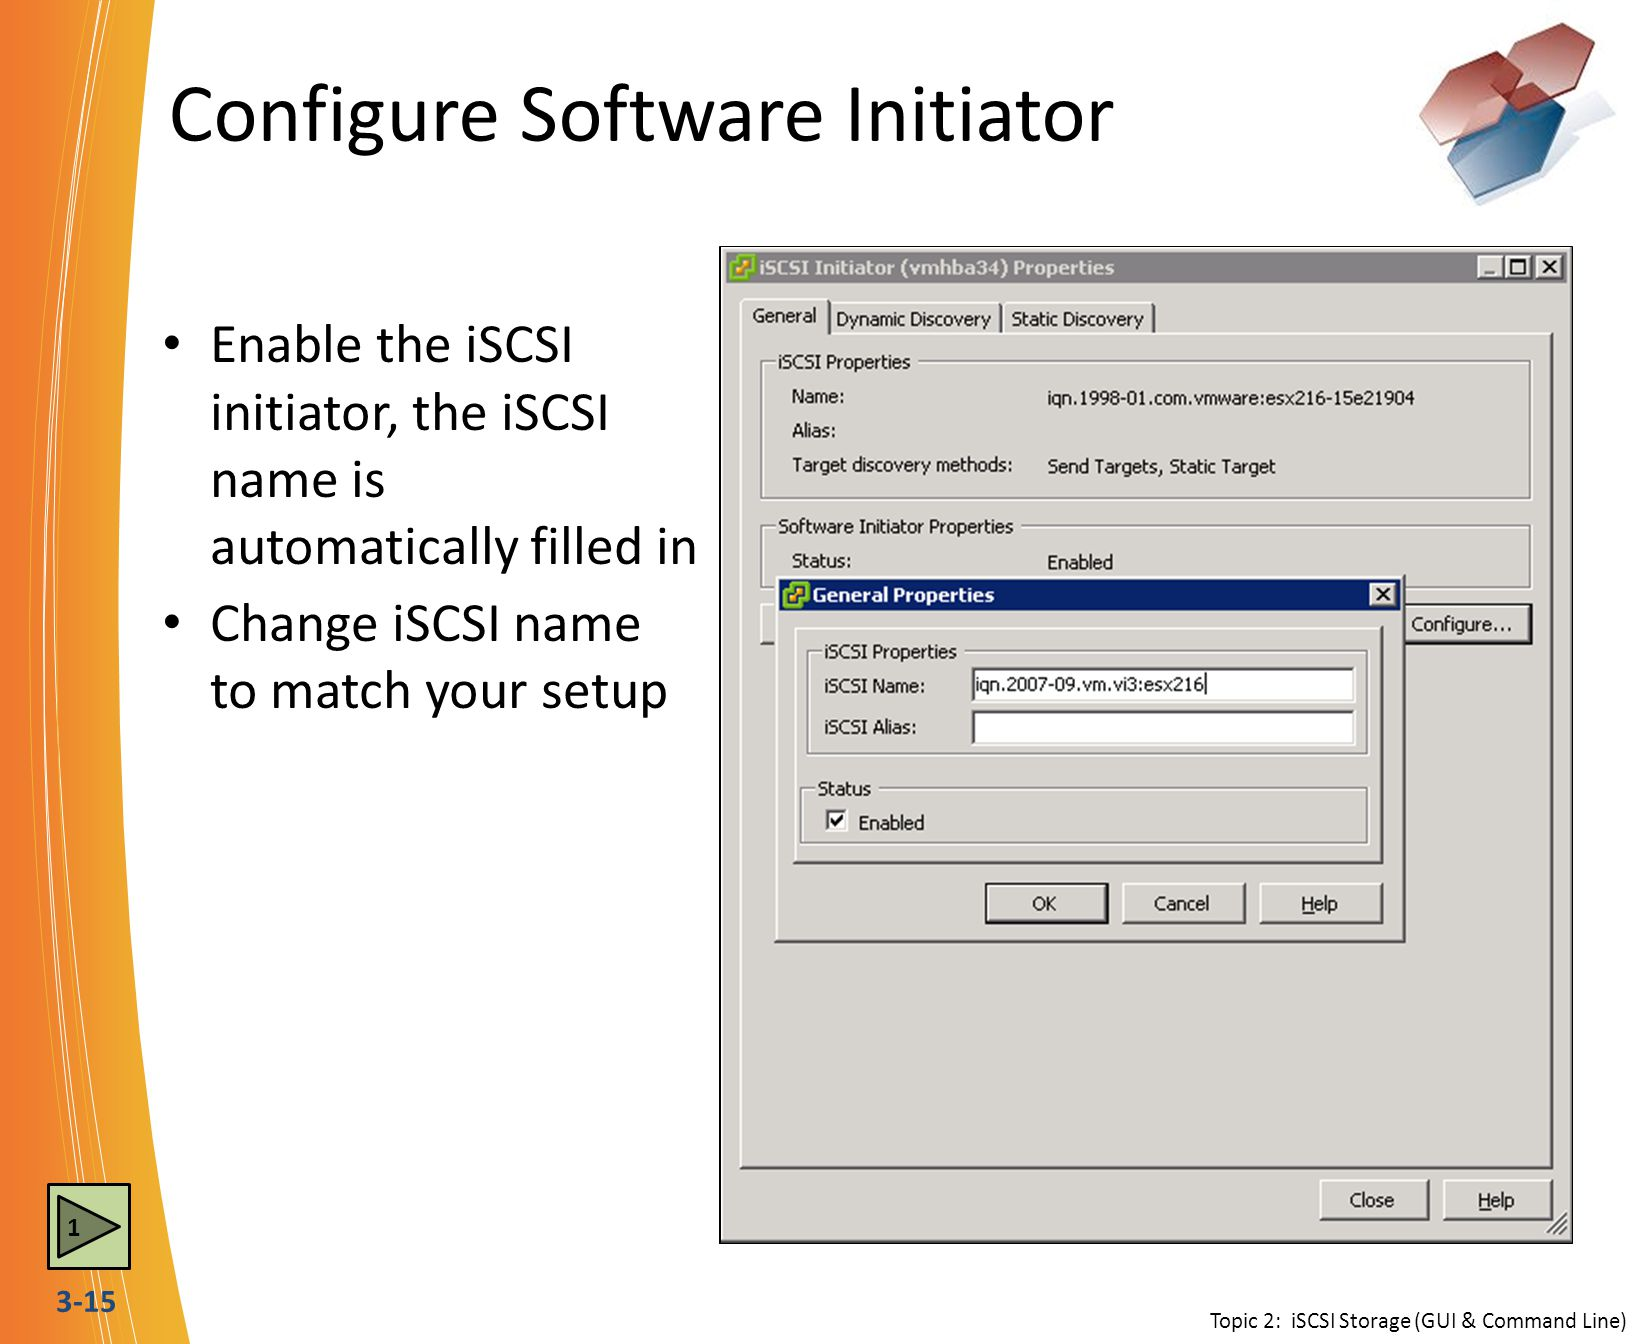 3-15 Configure Software Initiator Topic 2: iSCSI Storage (GUI & Command Line) Enable the iSCSI initiator, the iSCSI name is automatically filled in Ch